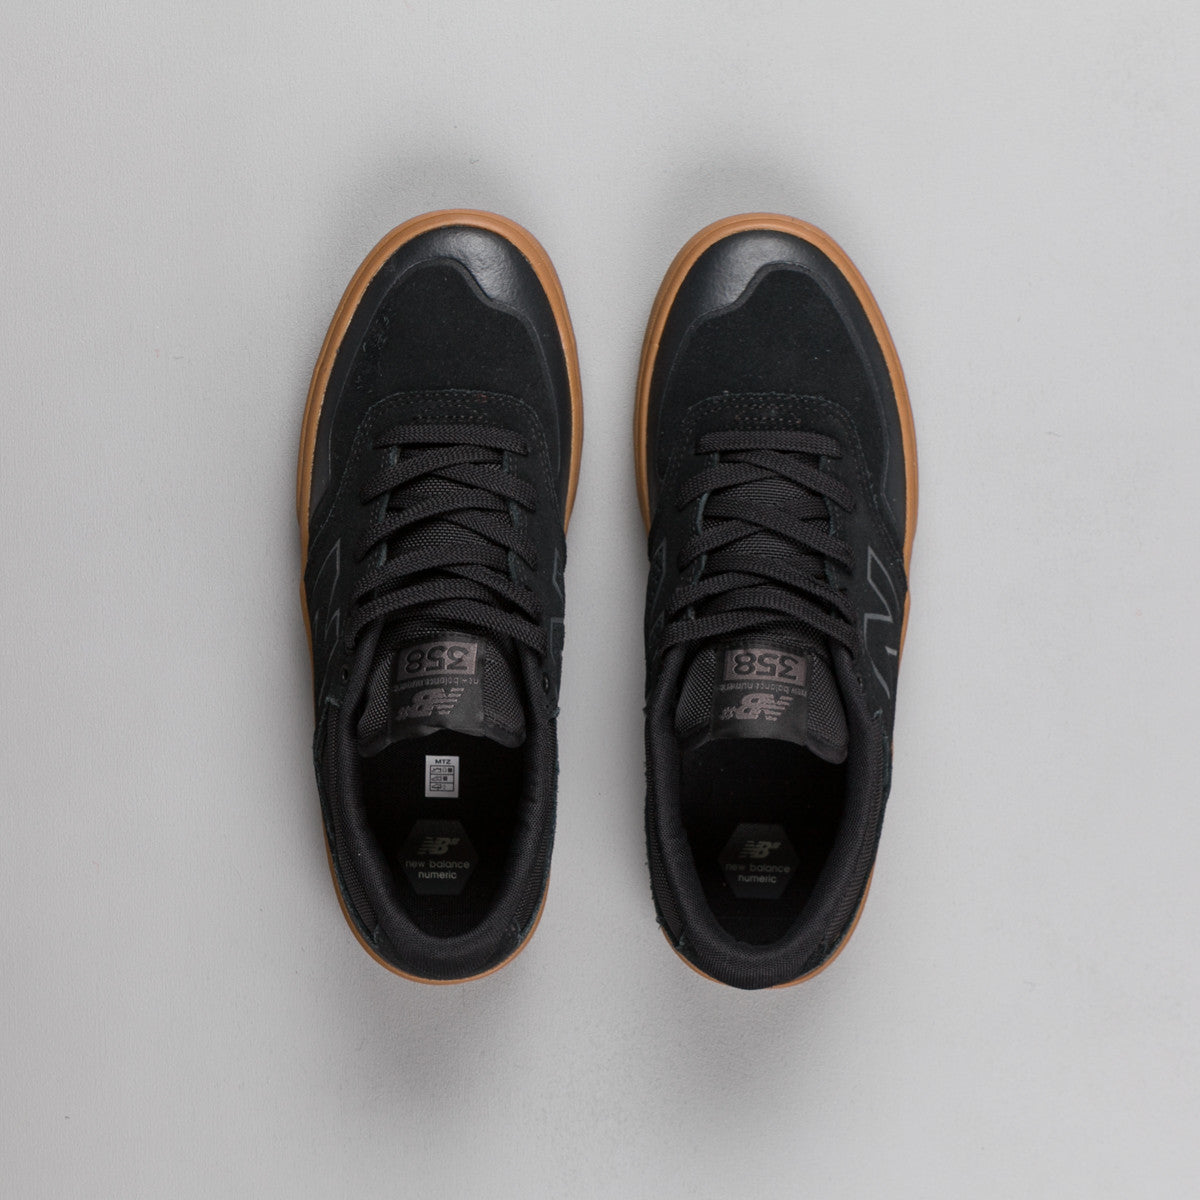 New Balance Numeric Arto 358 Shoes - Black / Gum